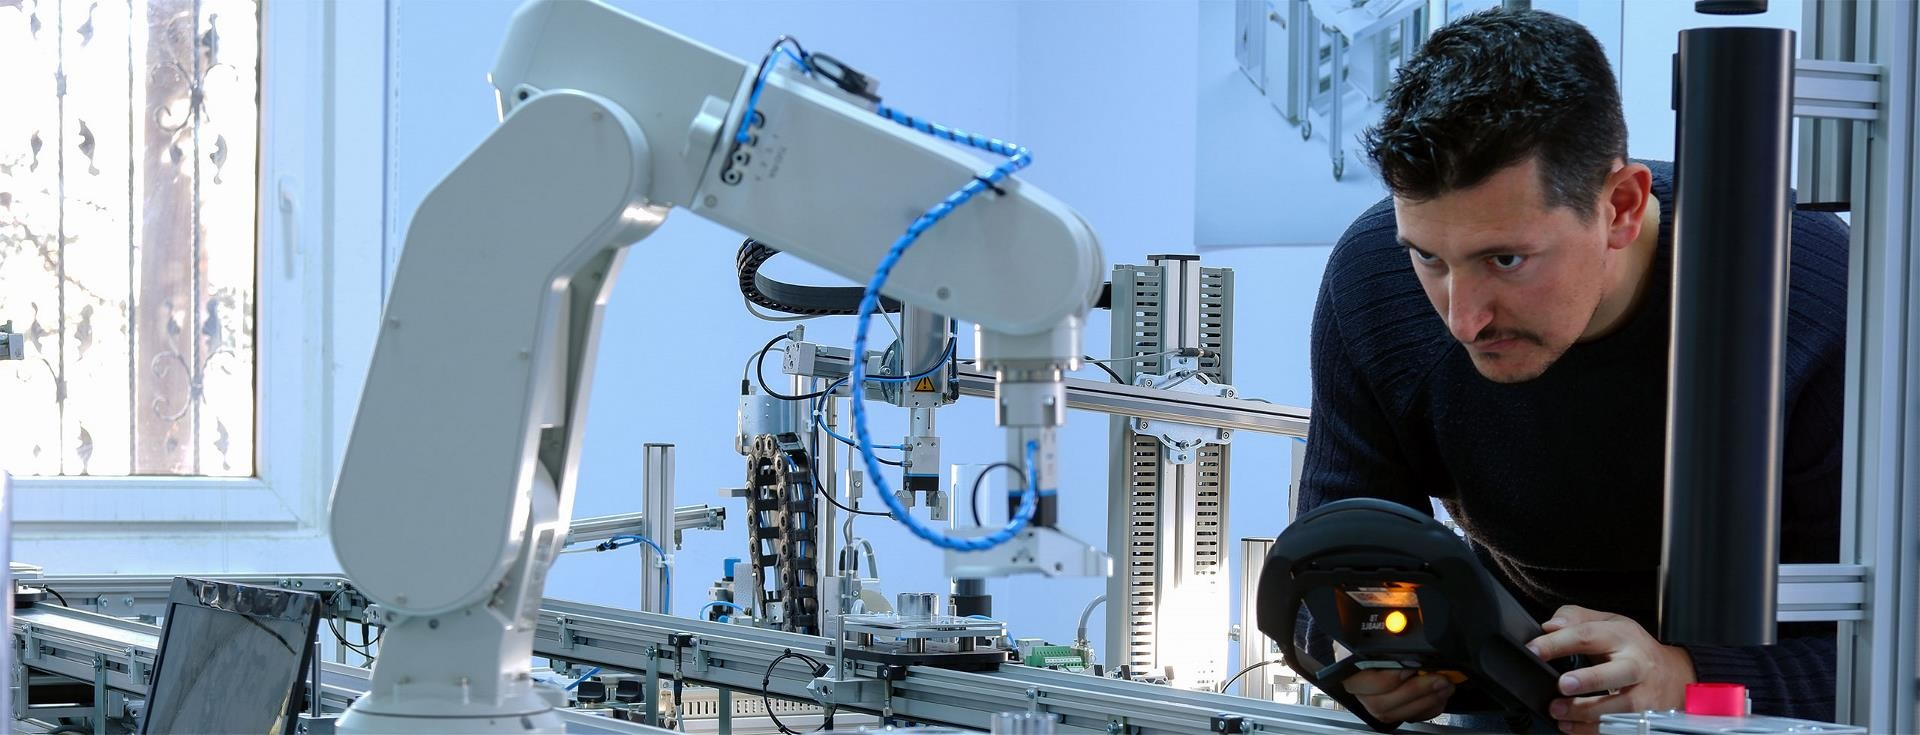 Man programming a robotic arm in a lab.